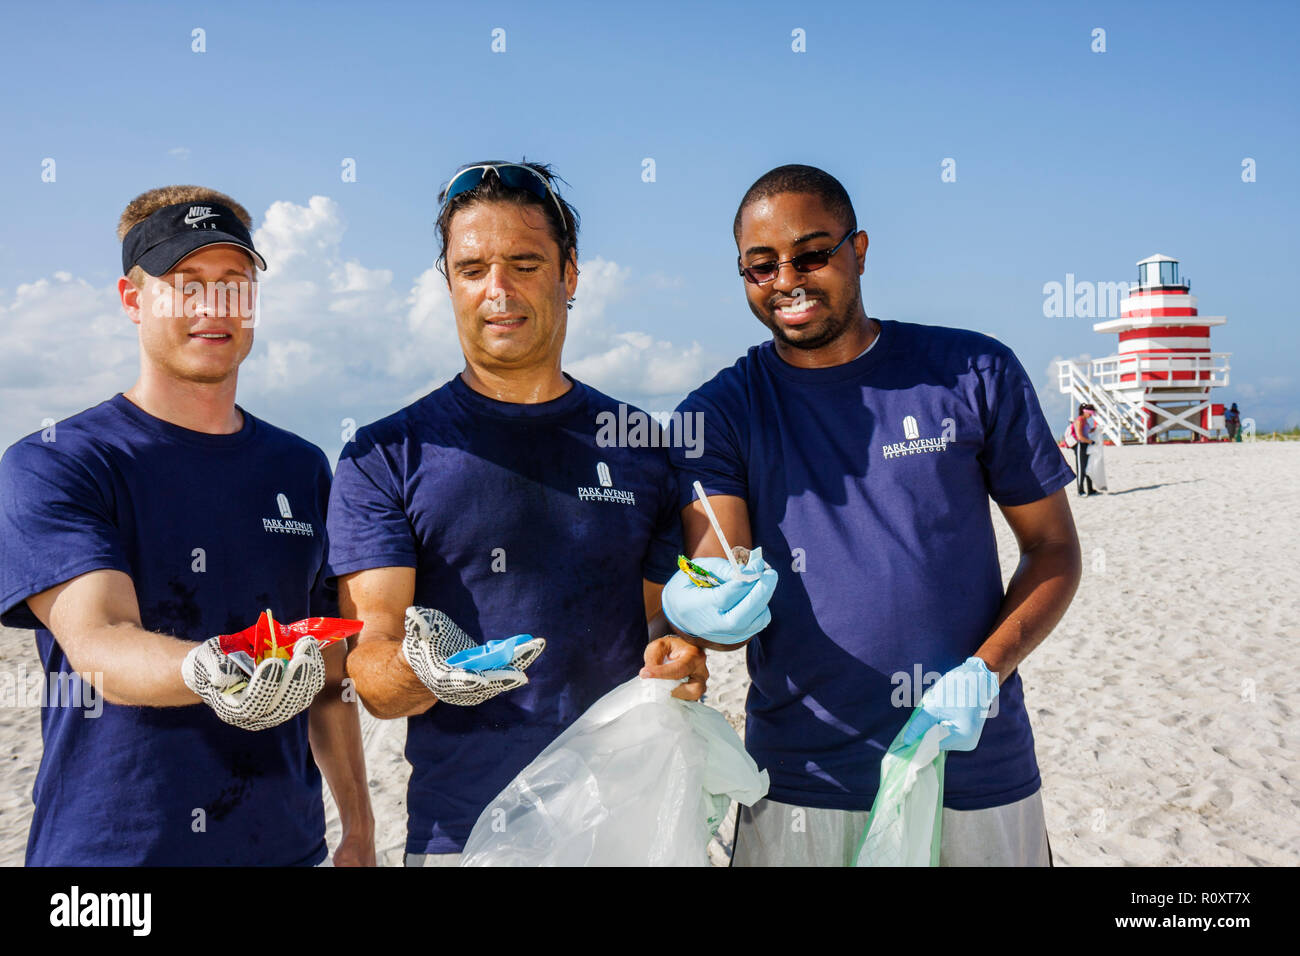 Miami Beach Florida Atlantic Ocean public beach shoreline ECOMB Big Sweep environment volunteer cleanup clean-up clean up litter - Stock Image